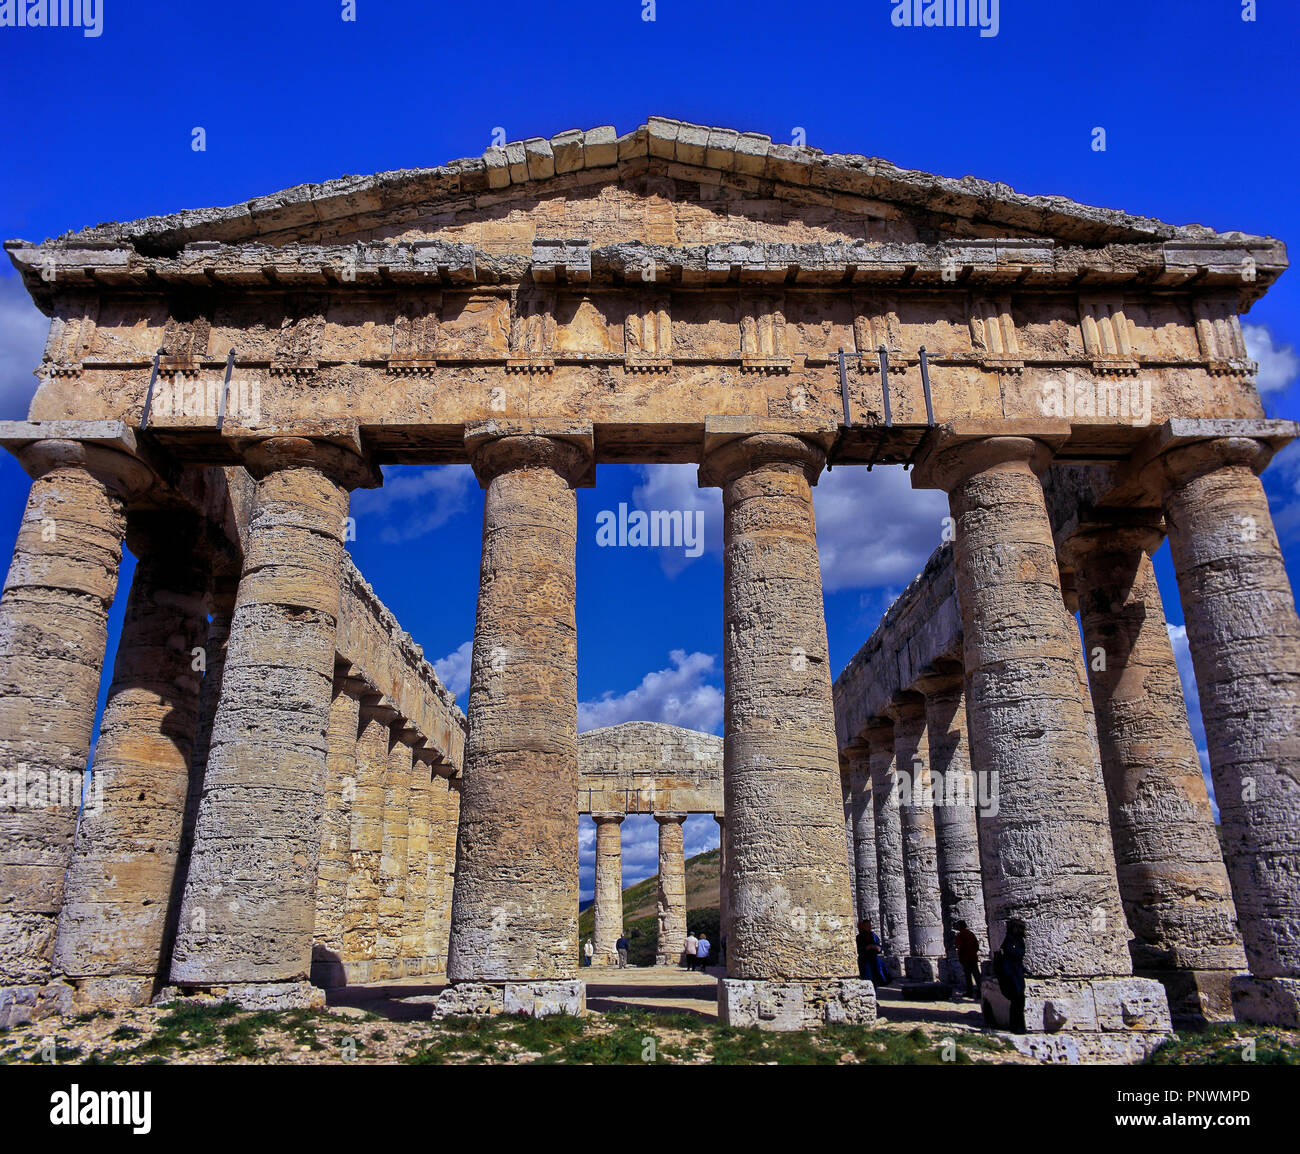 Greek temple of Segesta - 5th century BC. Unfinished (you can see the shafts of the doric columns without the caracteristic vertical grooves). Sicily. - Stock Image